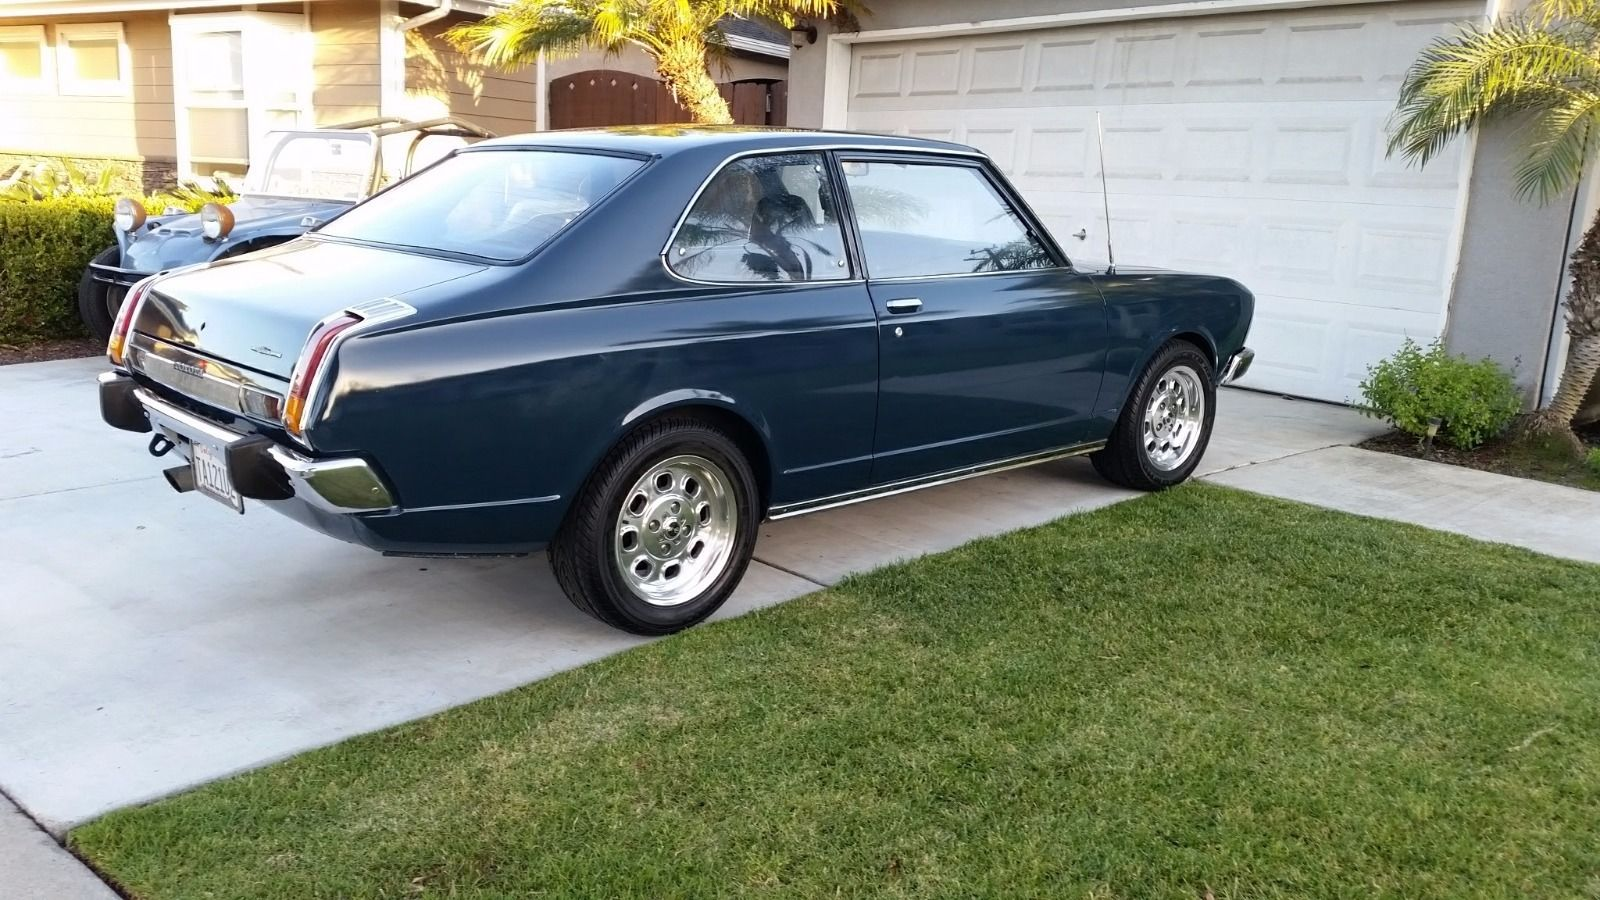 For Sale 1973 Toyota Carina With A 1uz Fe V8 Engine Swap Depot Celica Source Ebay Esd May Earn Commisions When Product Is Purchased From This Link